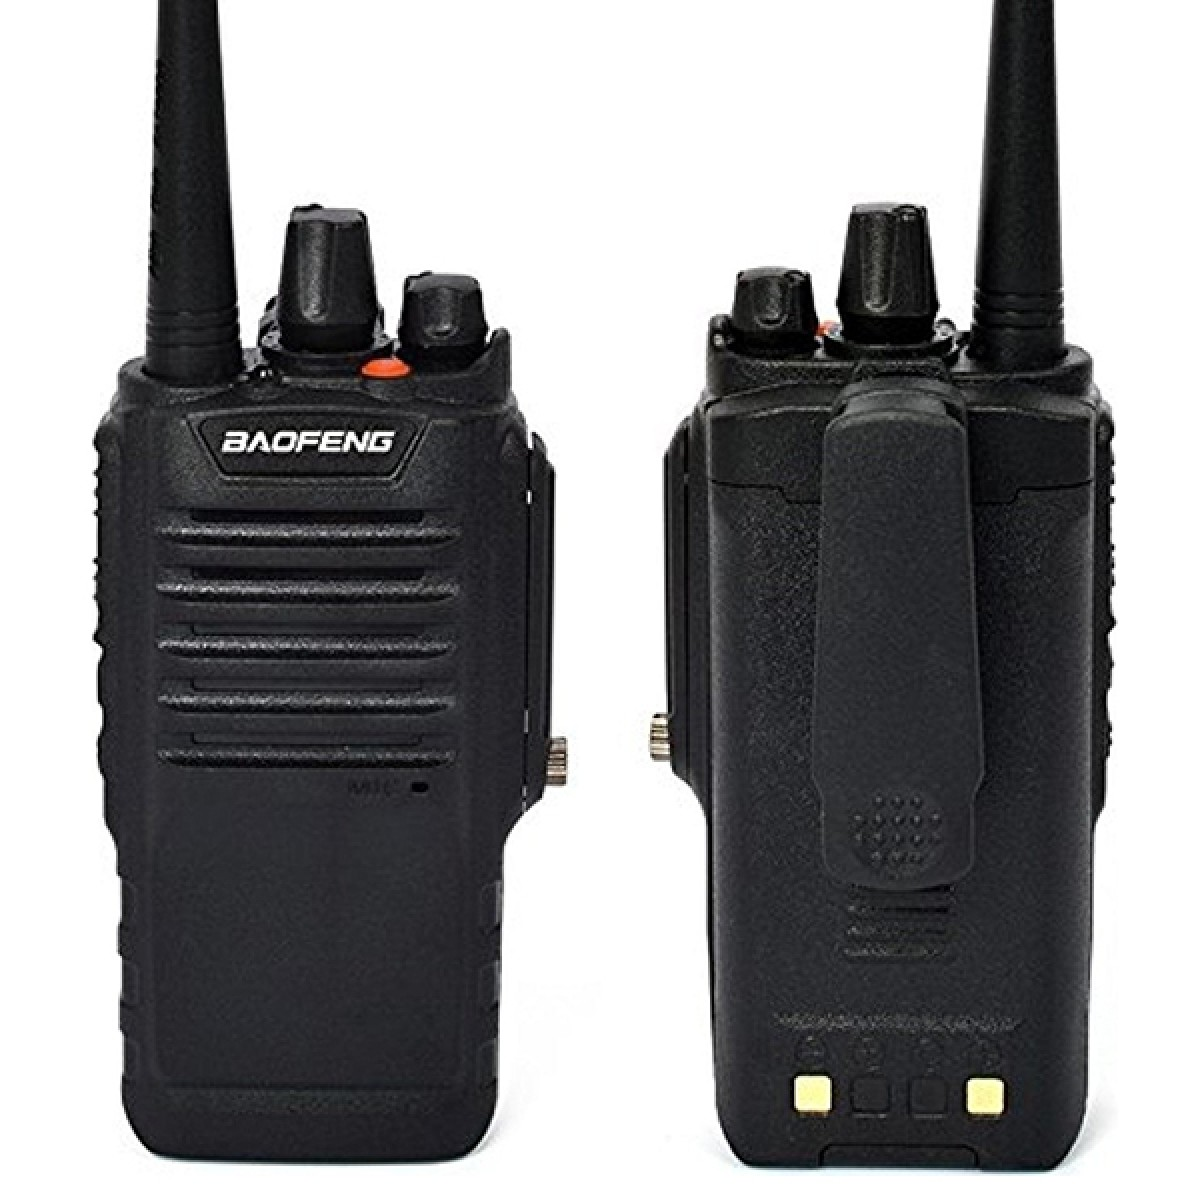 Baofeng UHF 8W Waterproof Dustproof Ham/Pro Two way Radio(BF-9700)